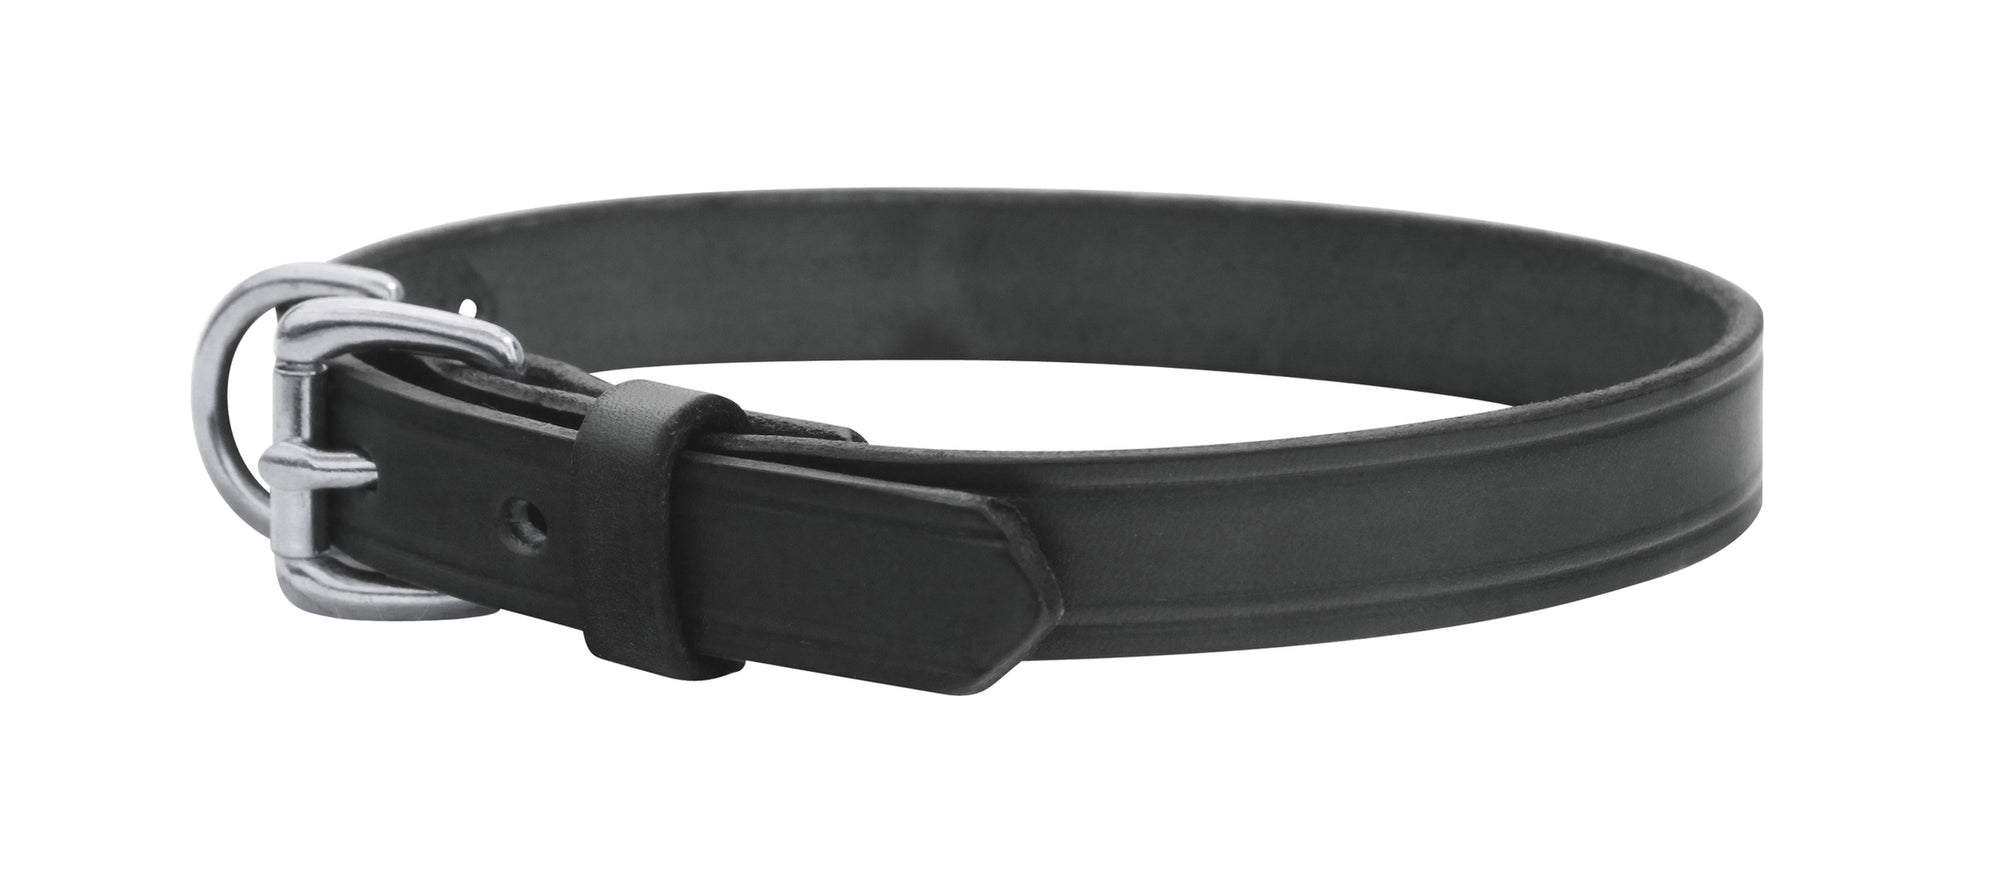 Perri's Leather Leather Dog Collar_1